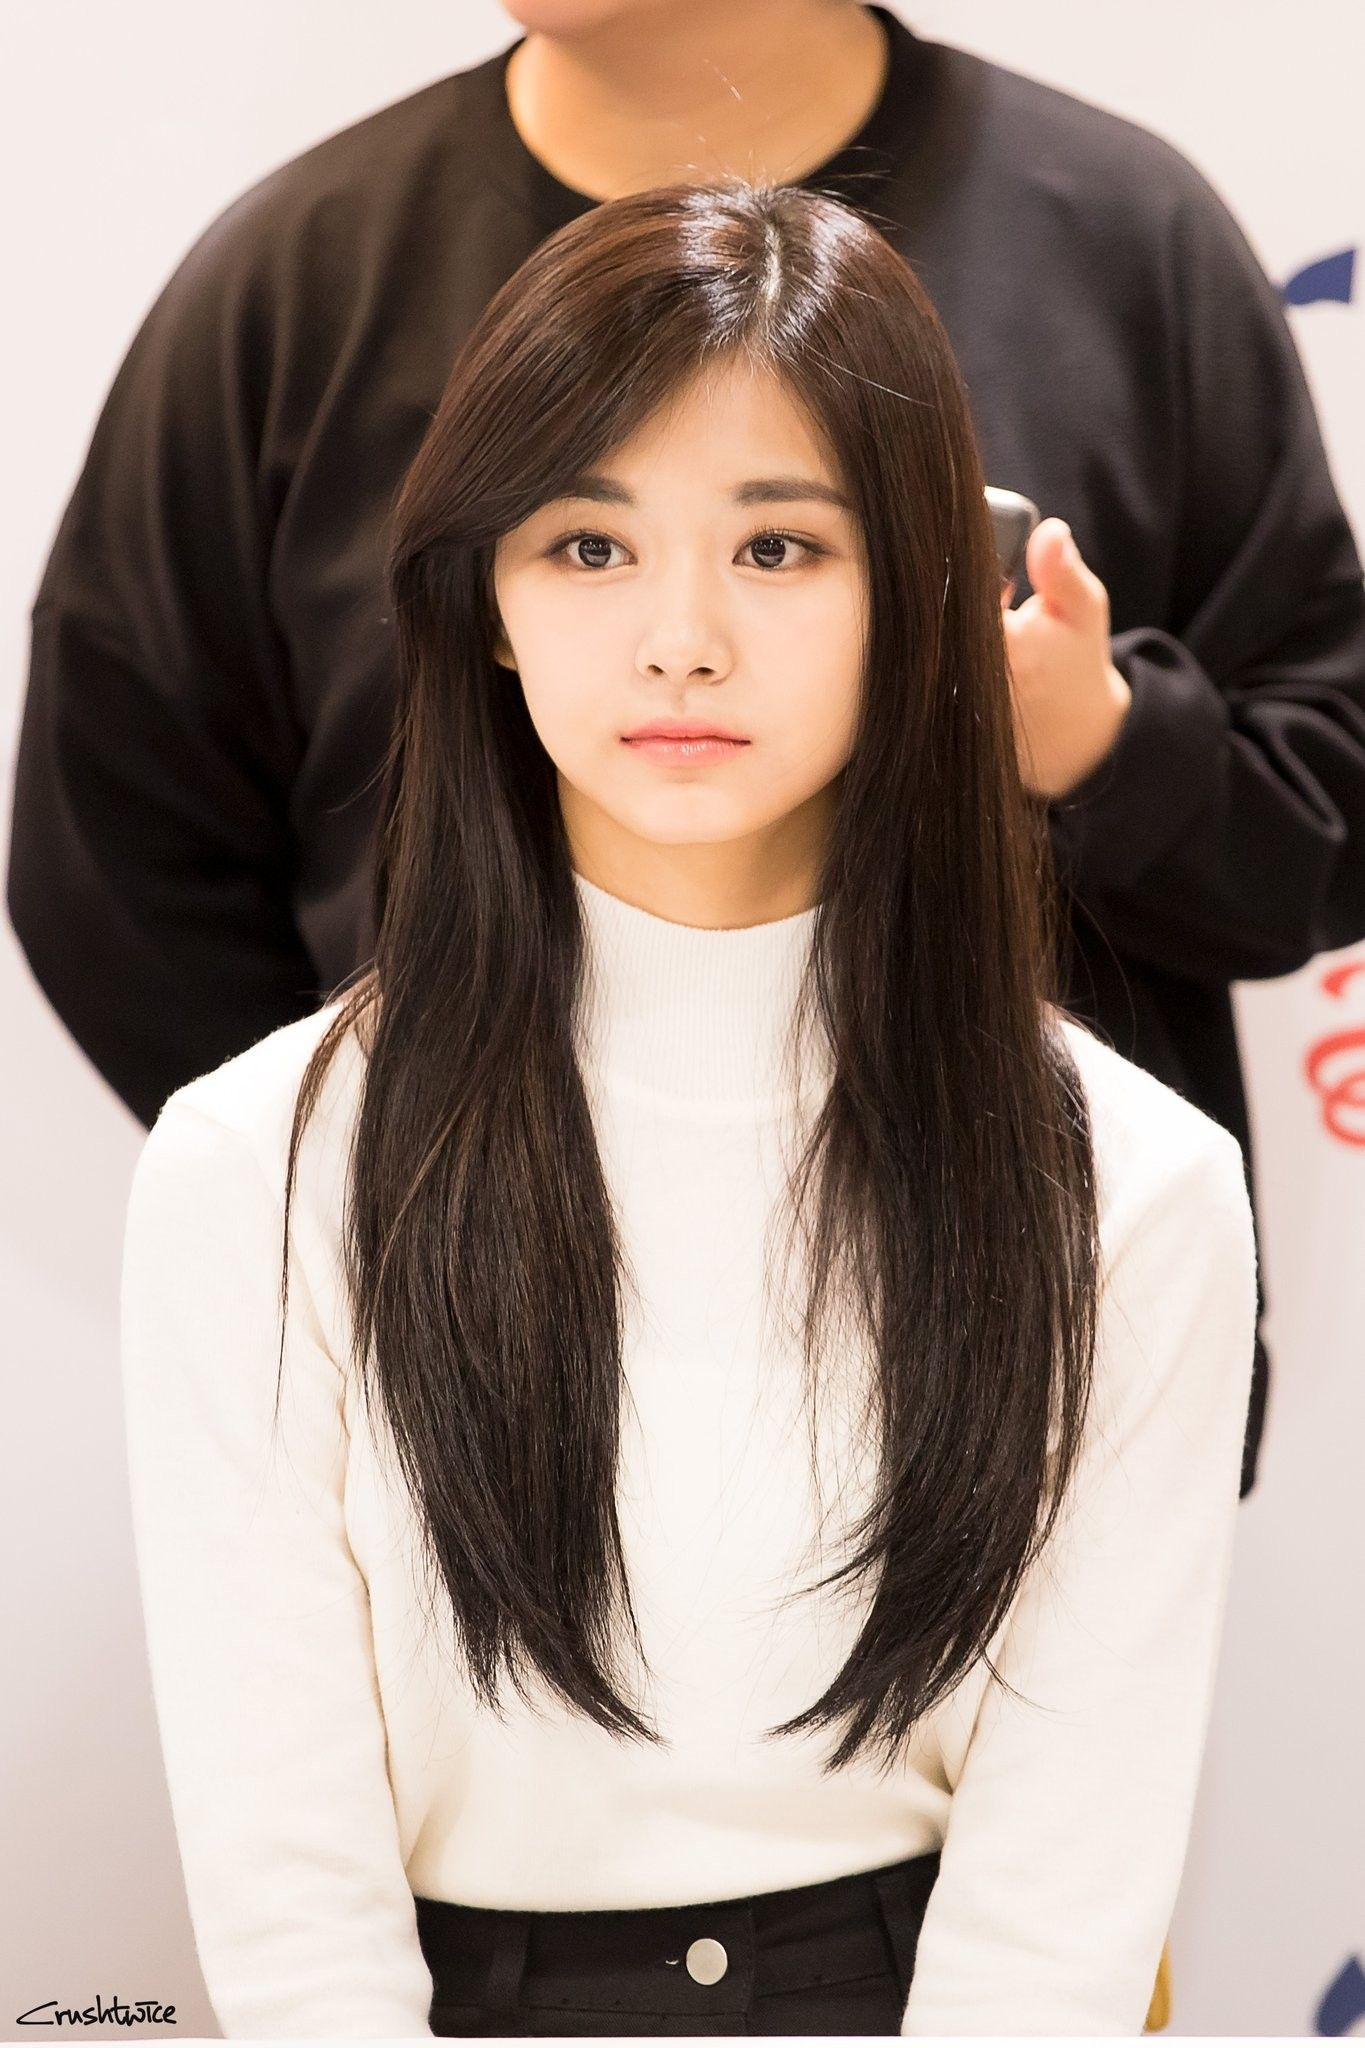 Tzuyu Twice kpop gg Pinterest Kpop, Kpop girls and